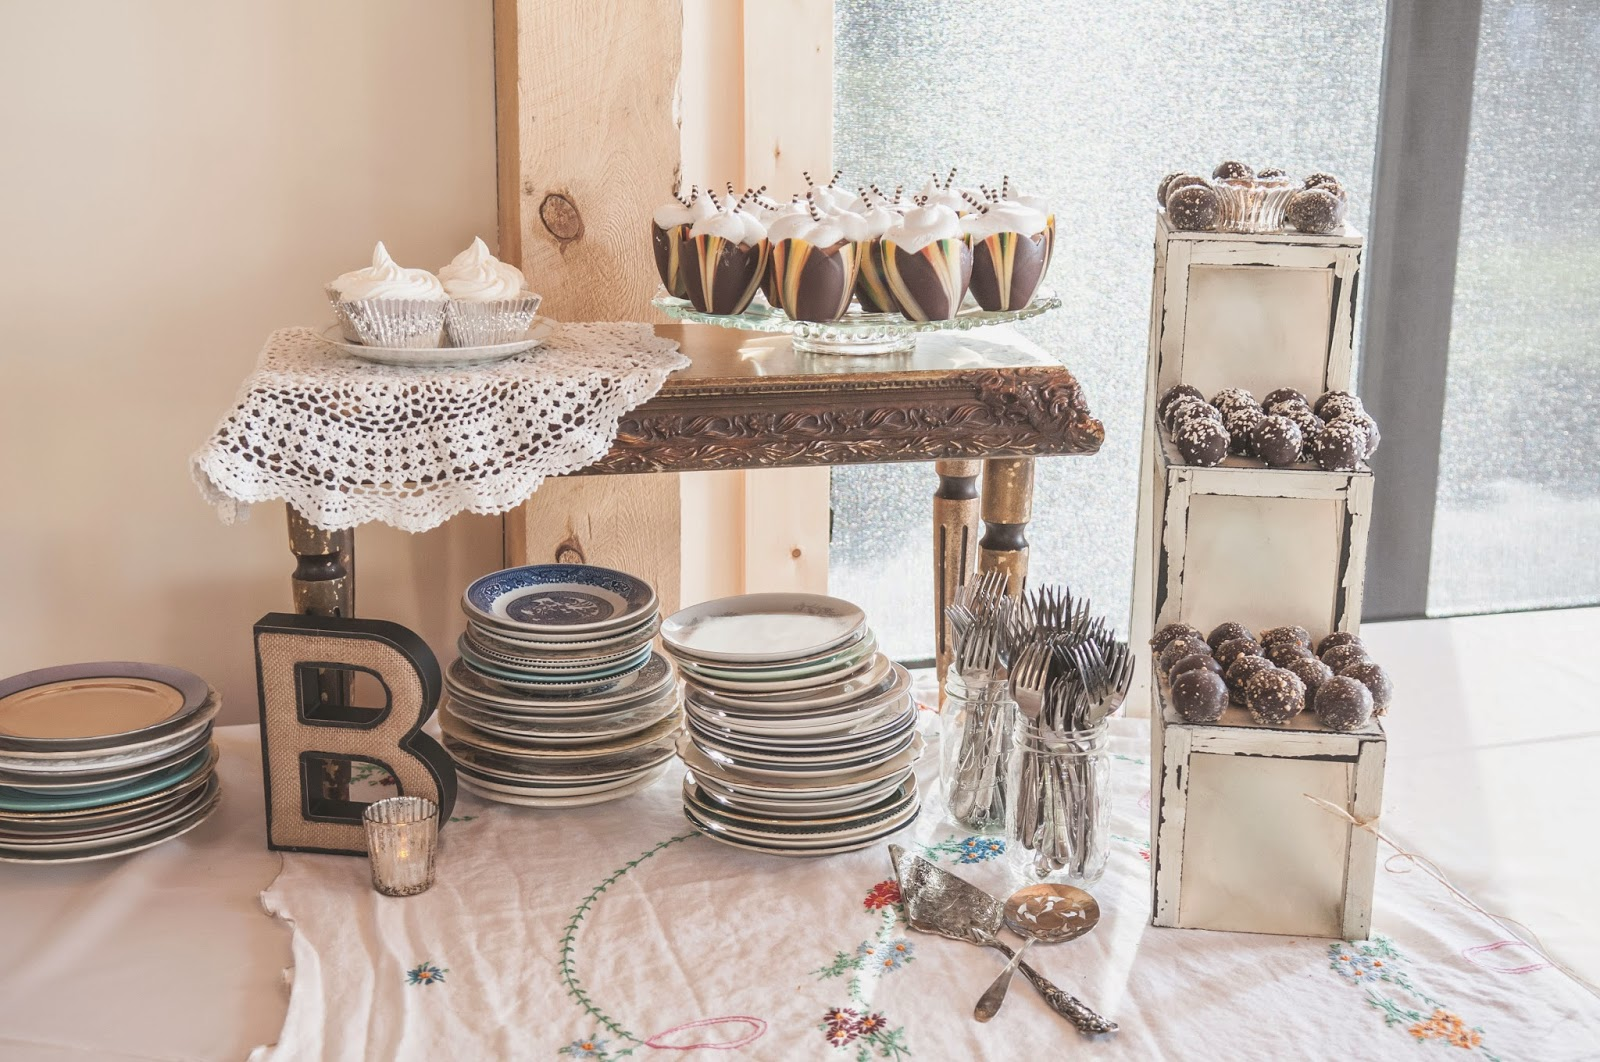 Bite-sized wedding dessert table